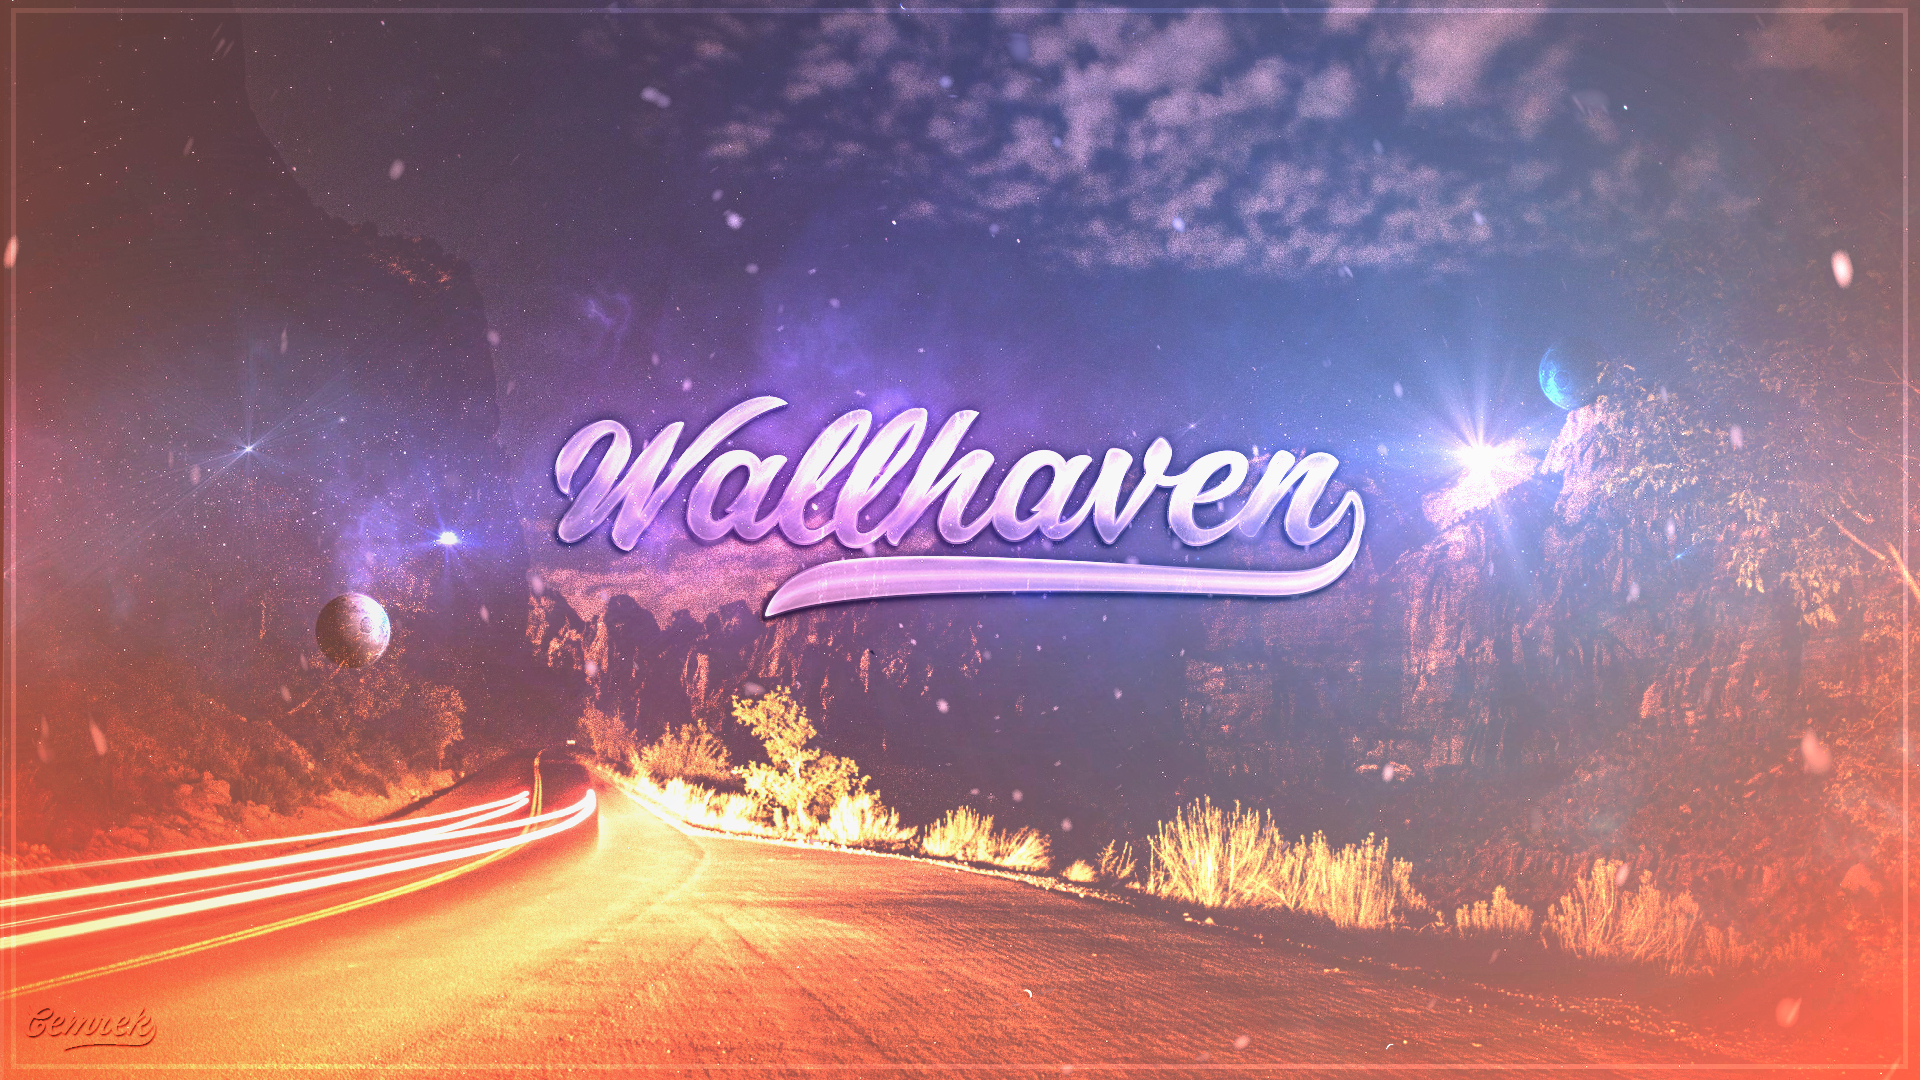 General 1920x1080 wallhaven metalanguage abstract space road flares